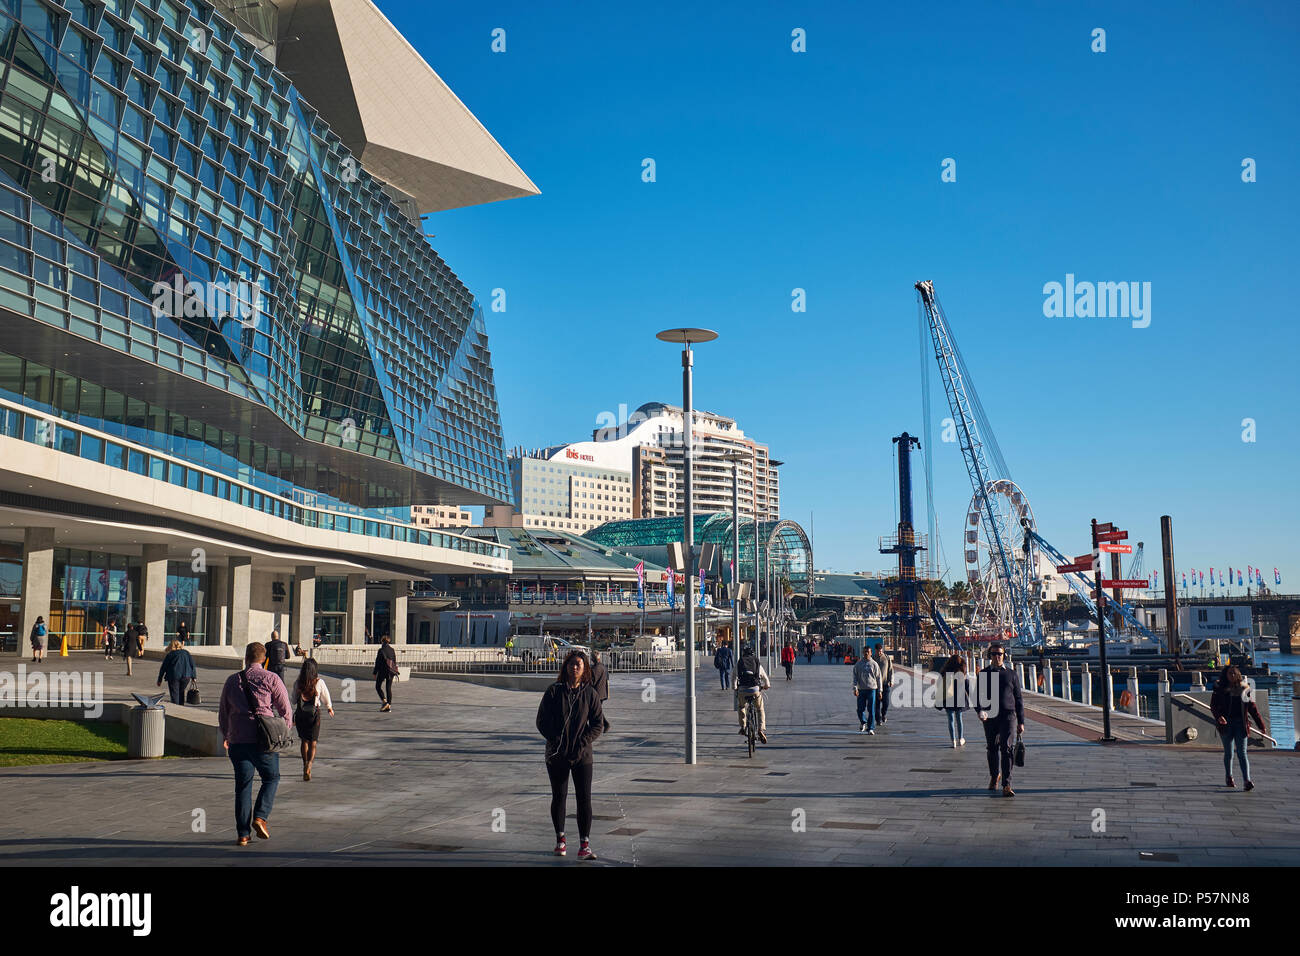 View of the International Convention Centre Sydney and The Harbourside Shopping Centre, Tumbalong, Darling Harbour, Sydney, Australia - Stock Image